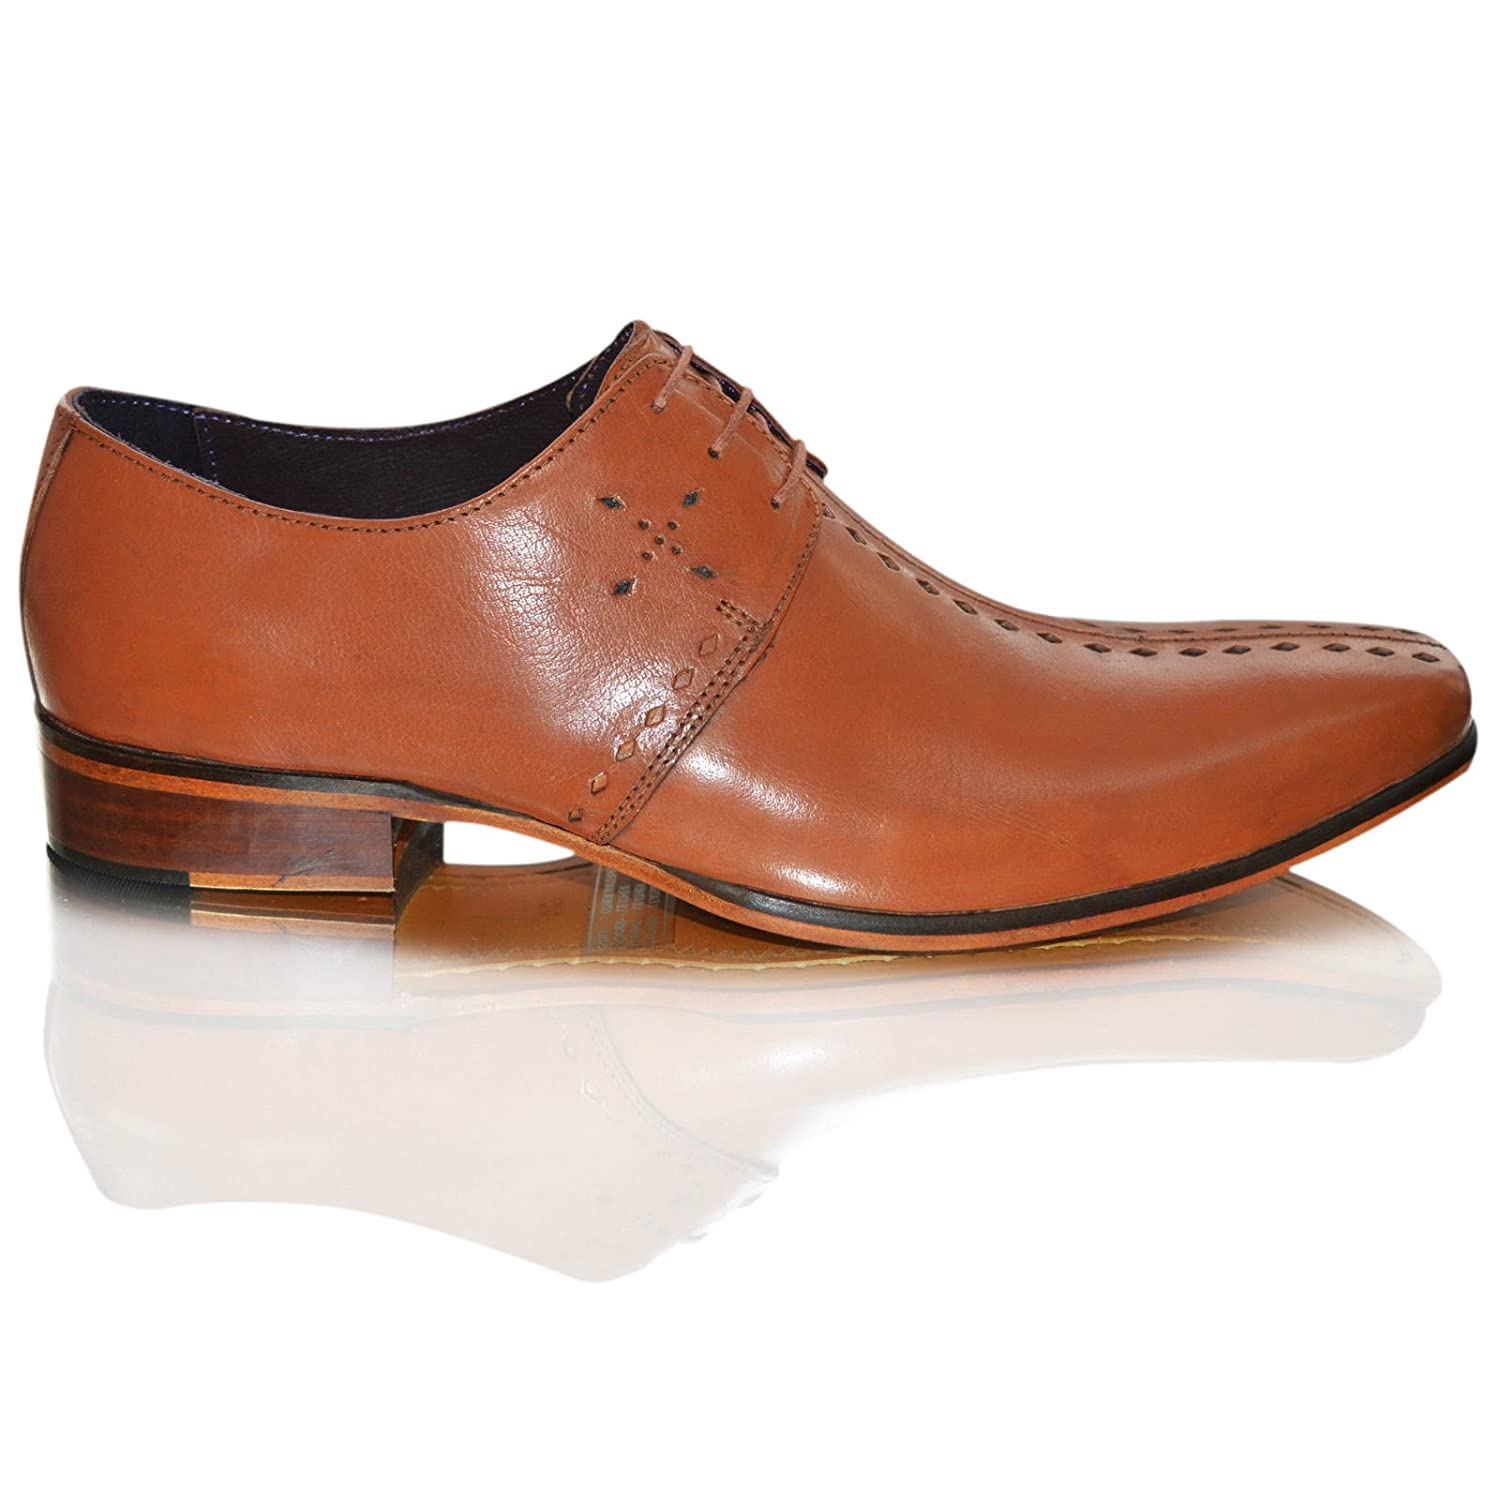 c459dea38be GUCINARI Mens 100%Leather Italian Smart Pointed Toe Slip On Formal Shoes  Size (UK 11